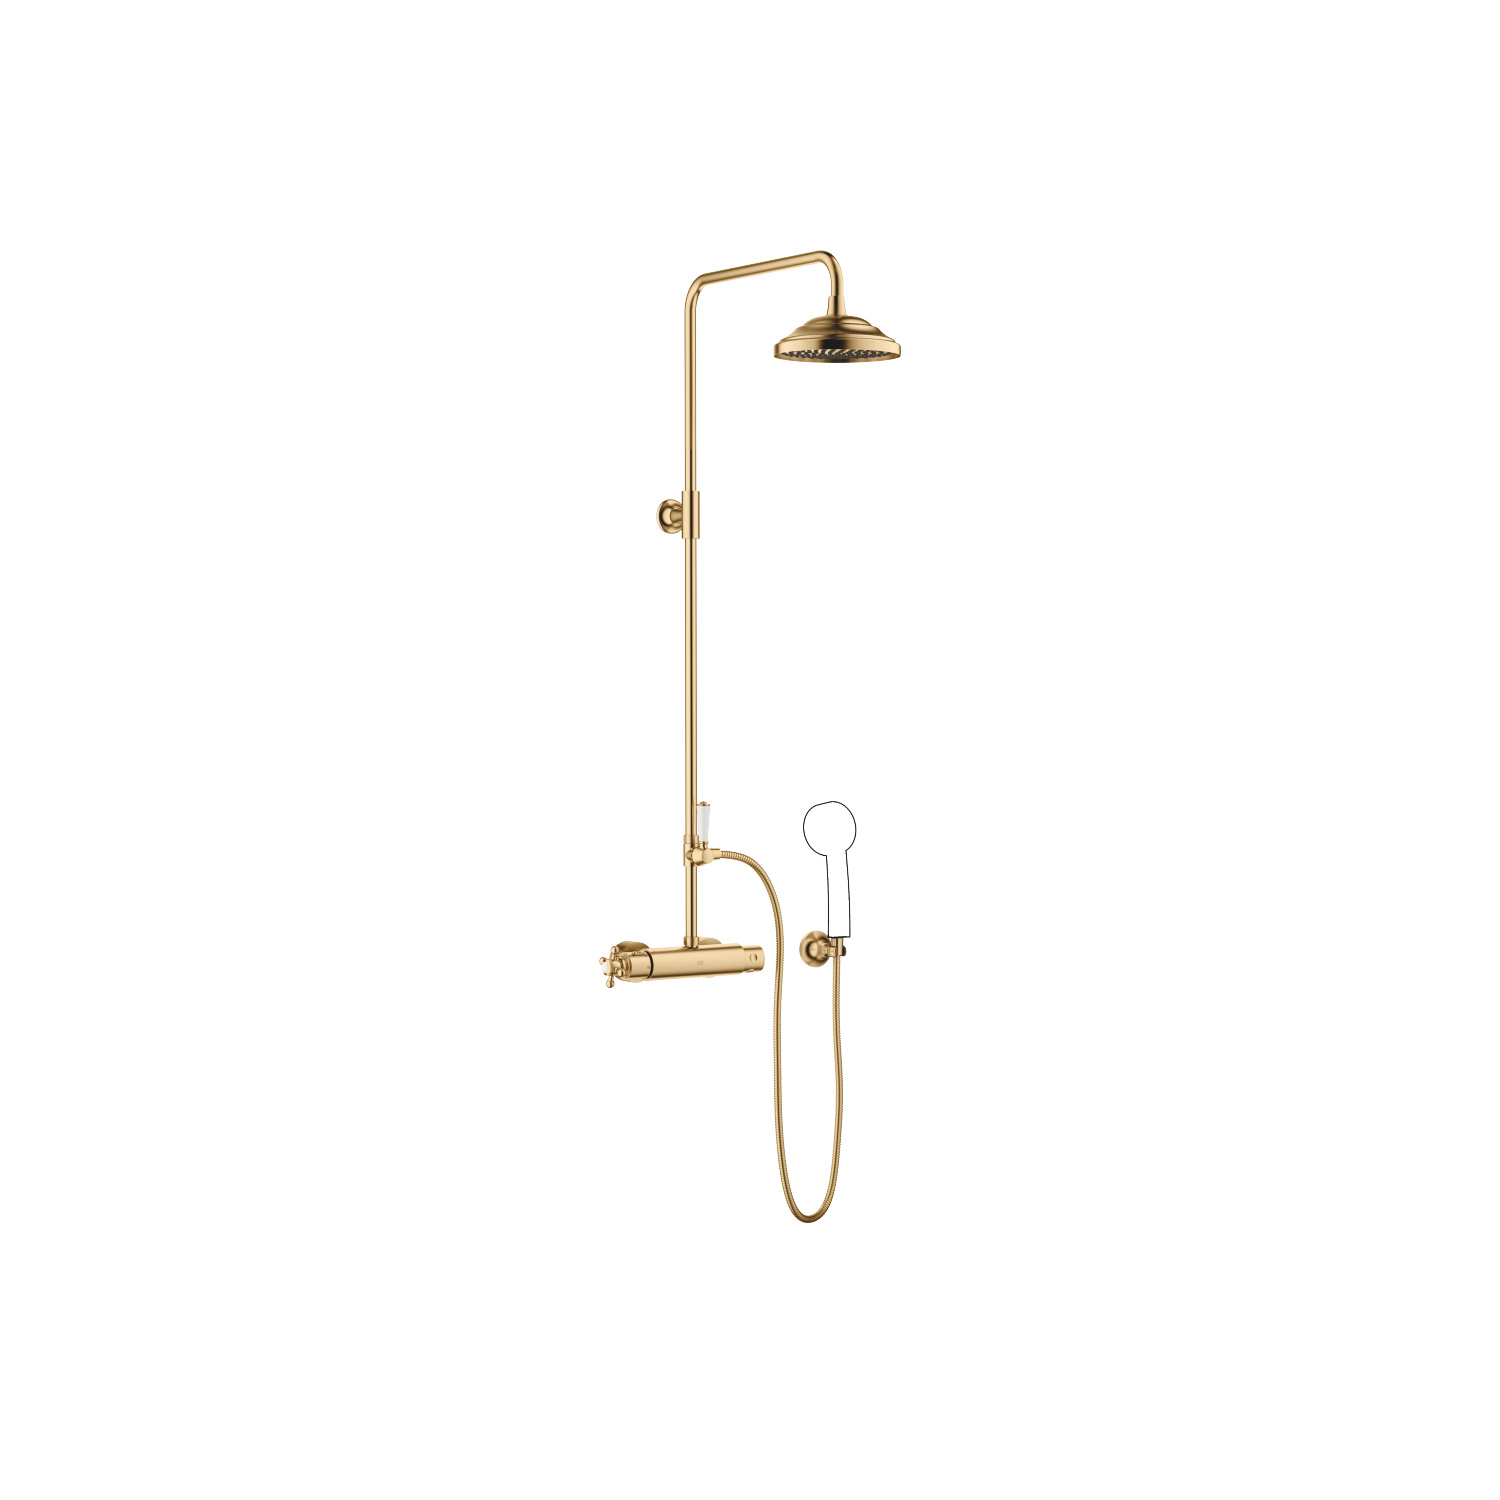 Showerpipe with shower thermostat without hand shower - brushed Durabrass